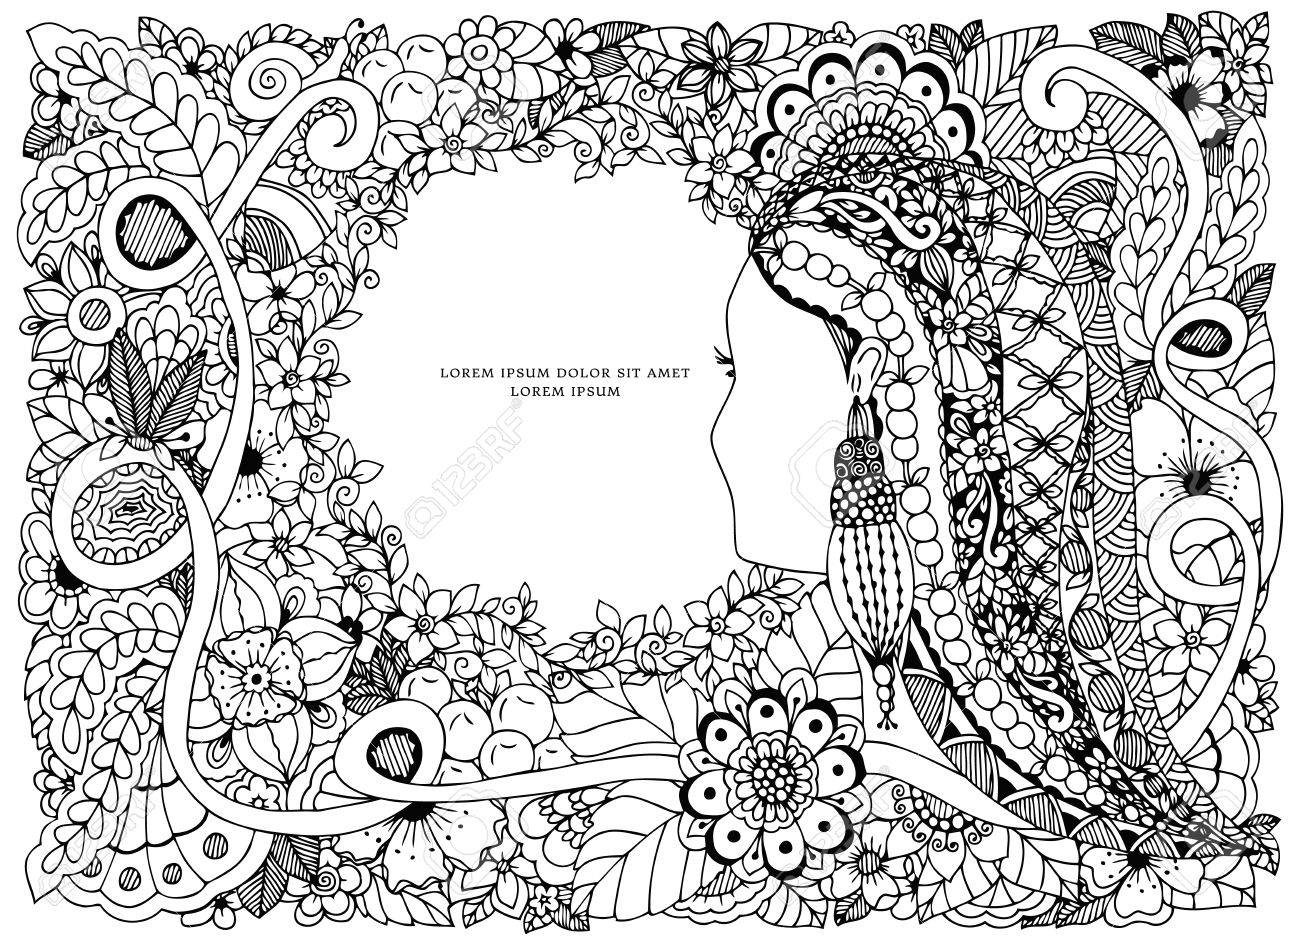 Vector Illustration Zen Tangle Portrait Of A Woman In A Flower ...